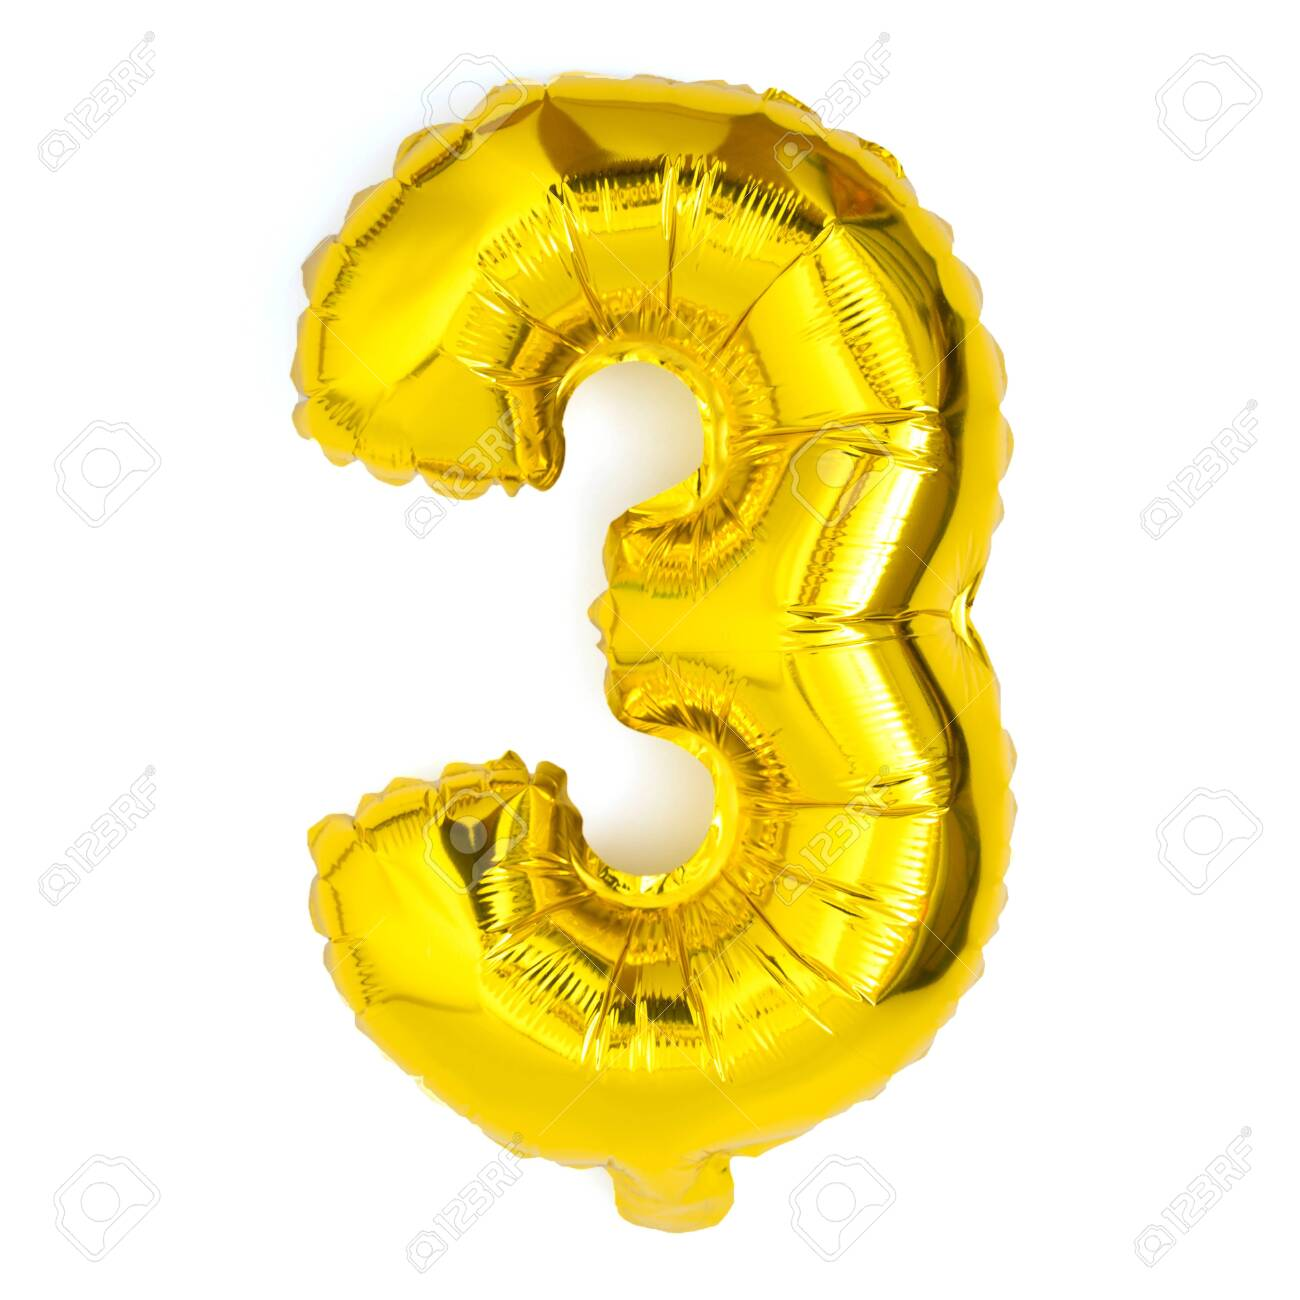 golden number three balloon party decoration anniversary on white background - 126113088